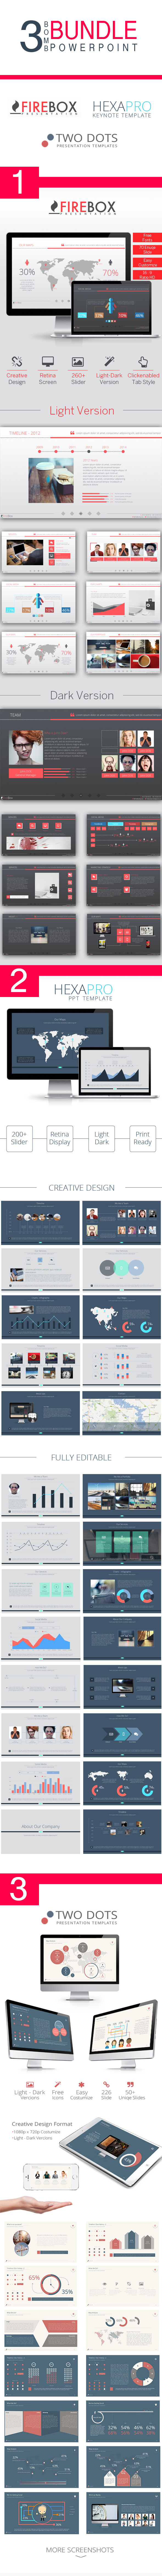 GraphicRiver 3 Bomb Bundle PowerPoint Presentation 10057924